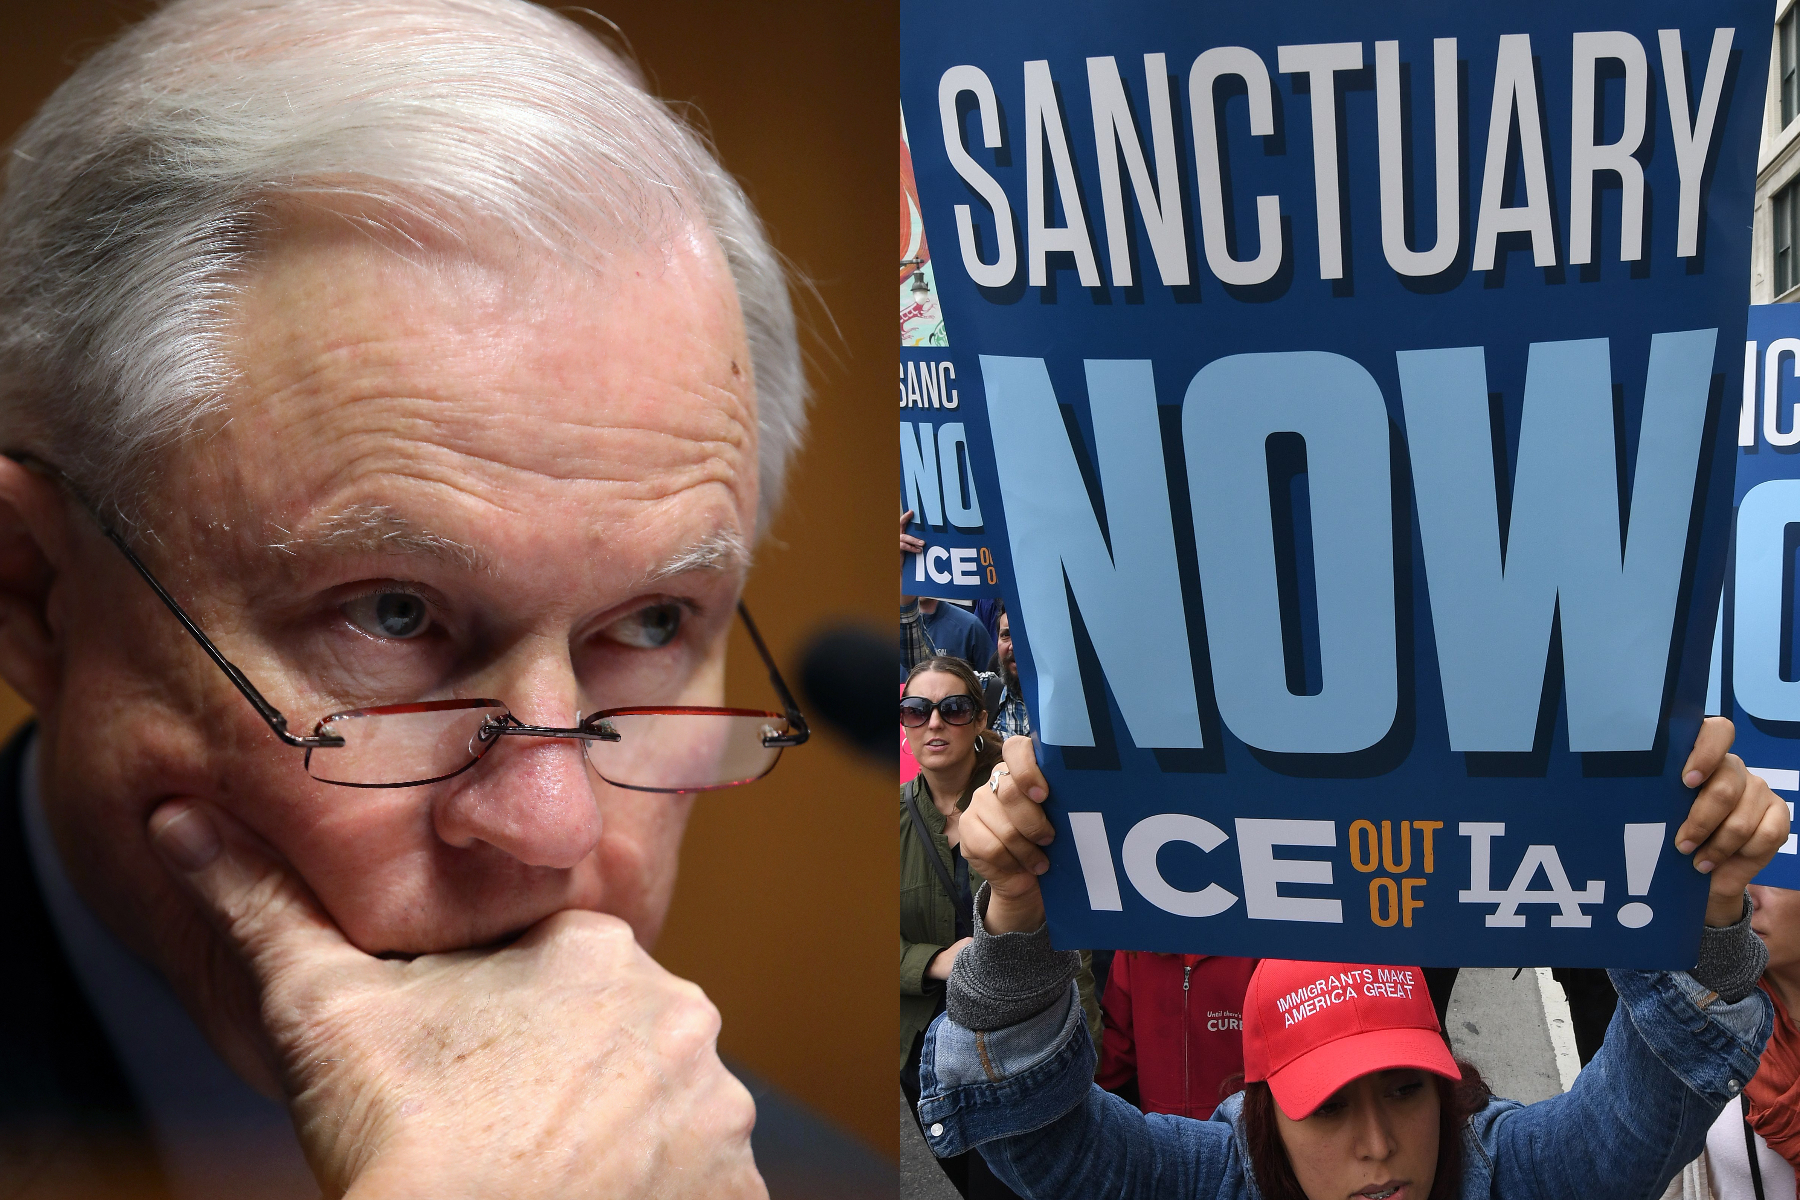 Sanctuary cities (and states), explained - Vox